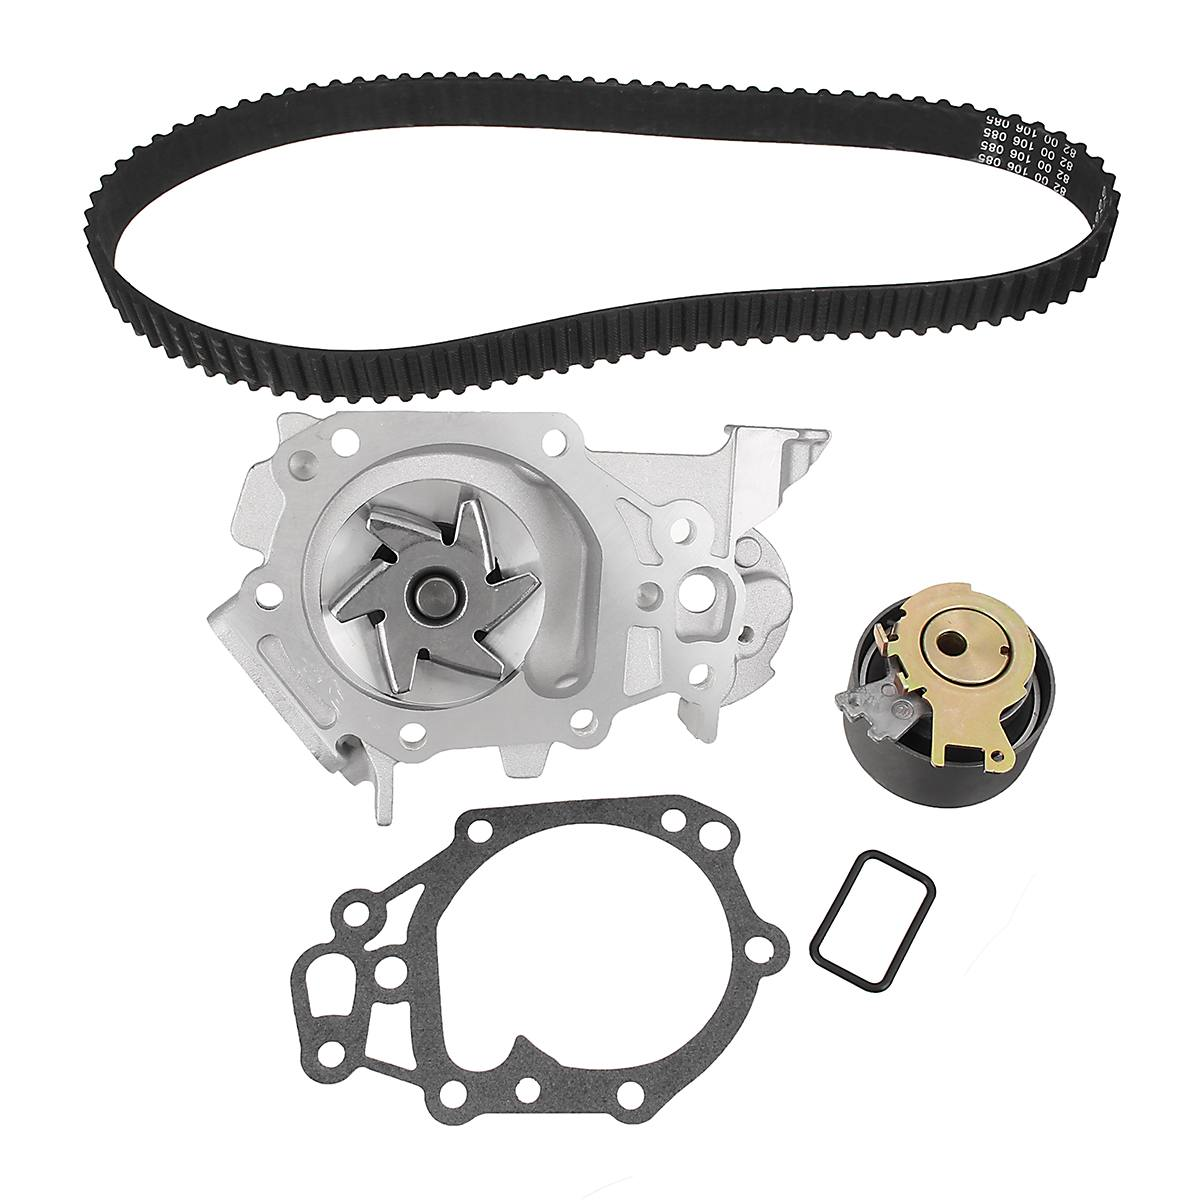 small resolution of 1 2 16v gates timing belt water pump kp25577xs for renault clio clio grandtour kangoo modus grand modus thalia thalia i